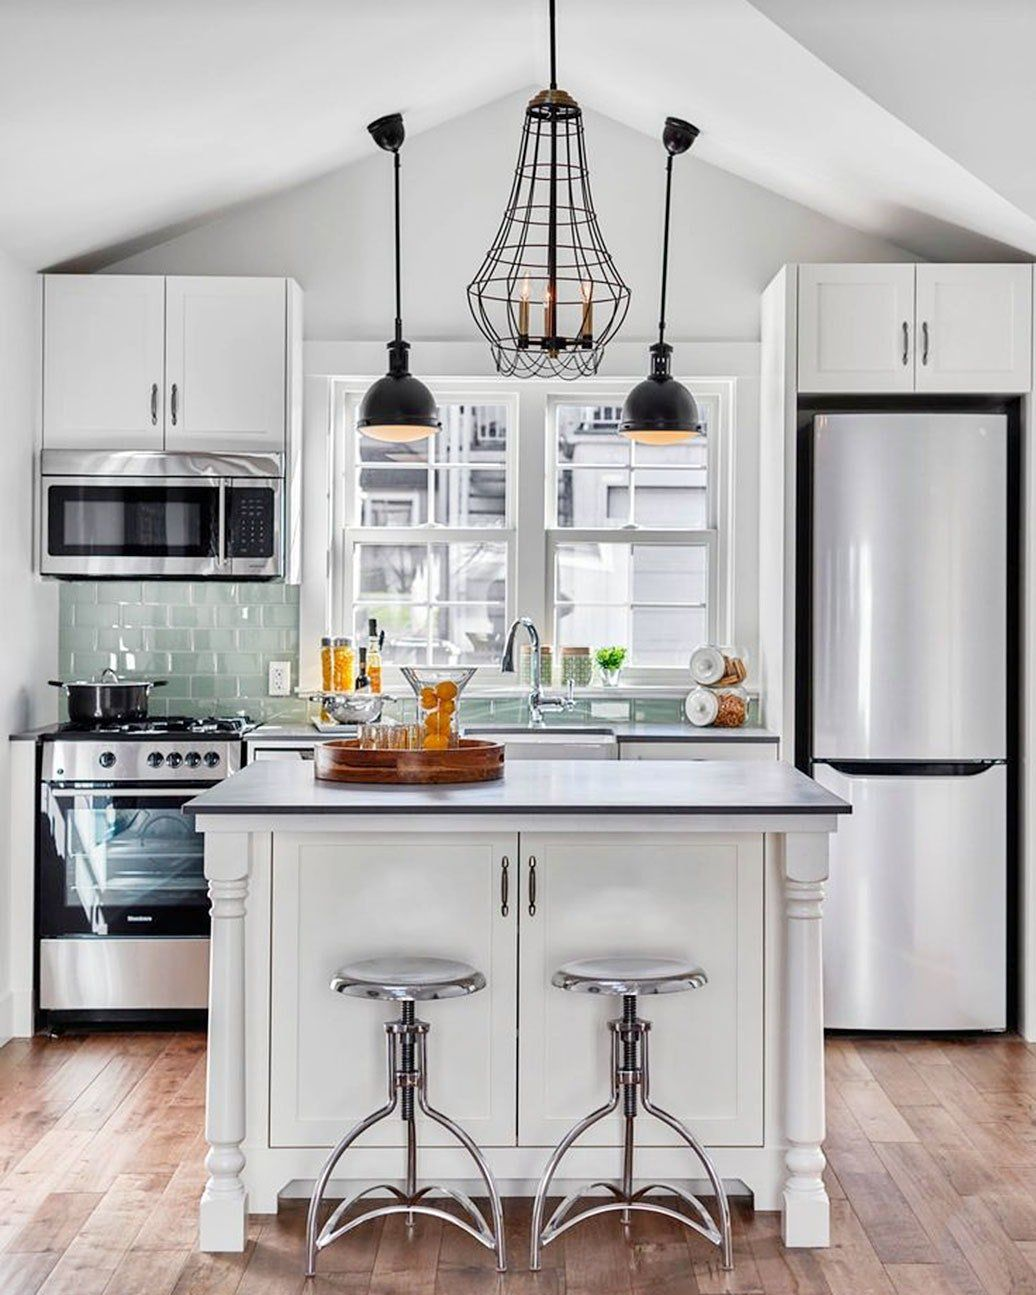 5 Smart Ways to Fit a Kitchen Island in a Small Space ...